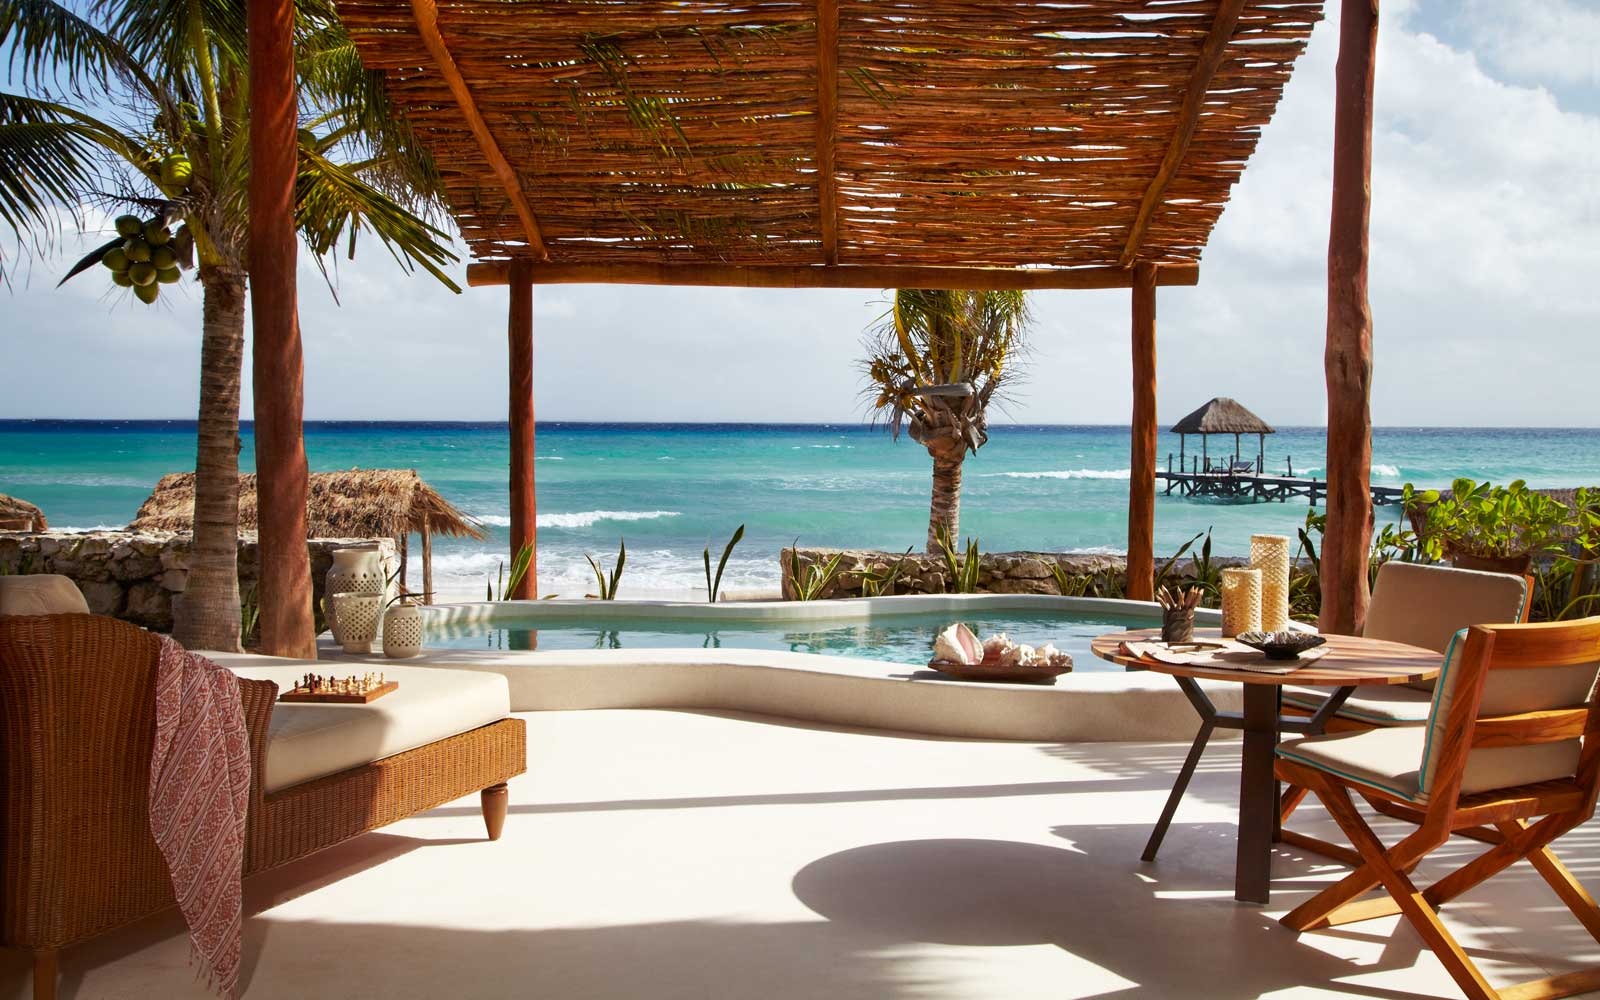 View to the ocean from the Viceroy Riviera Maya resort